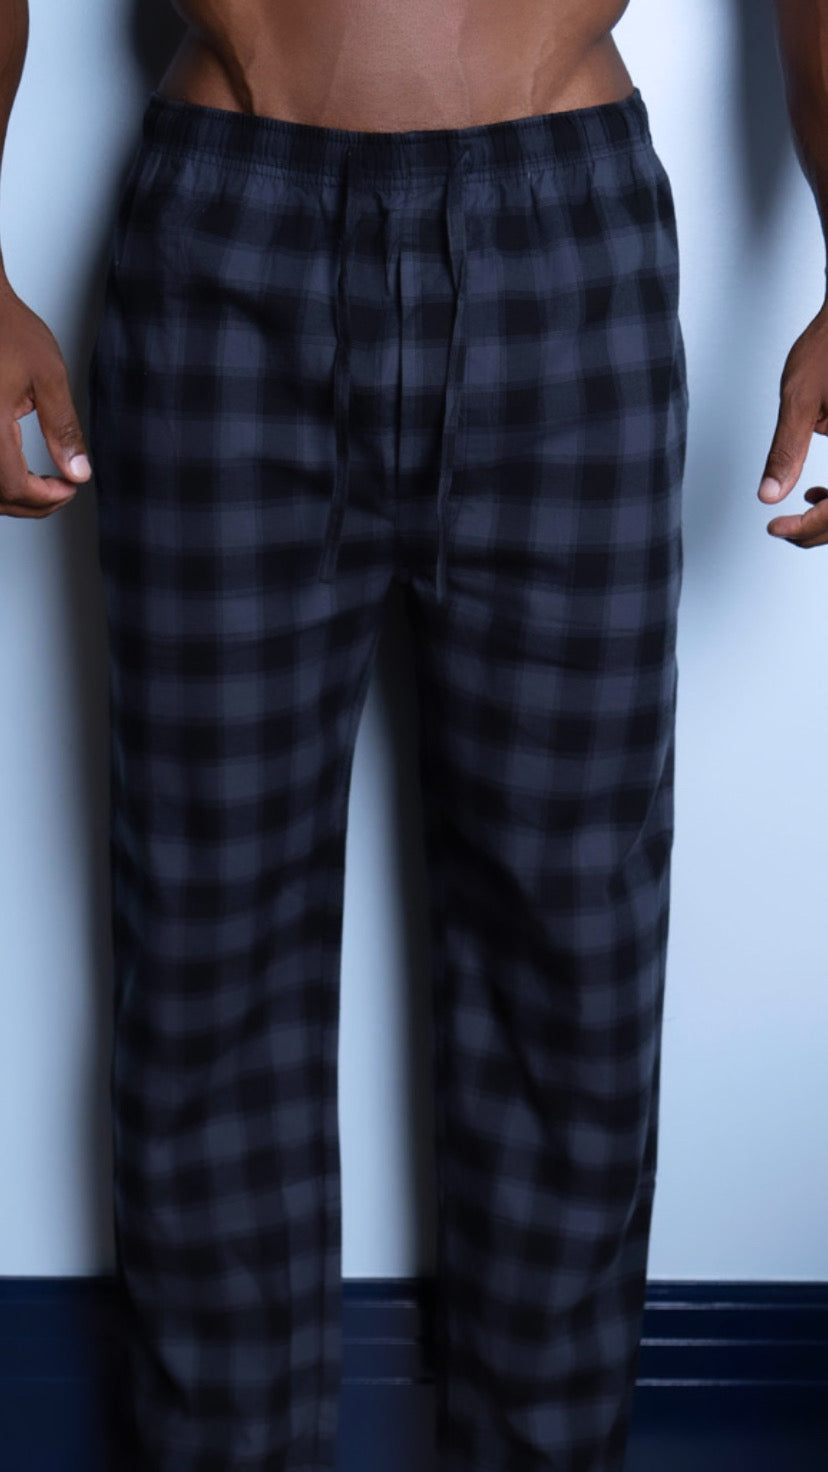 Black And Gray Checkered Pajama Pants